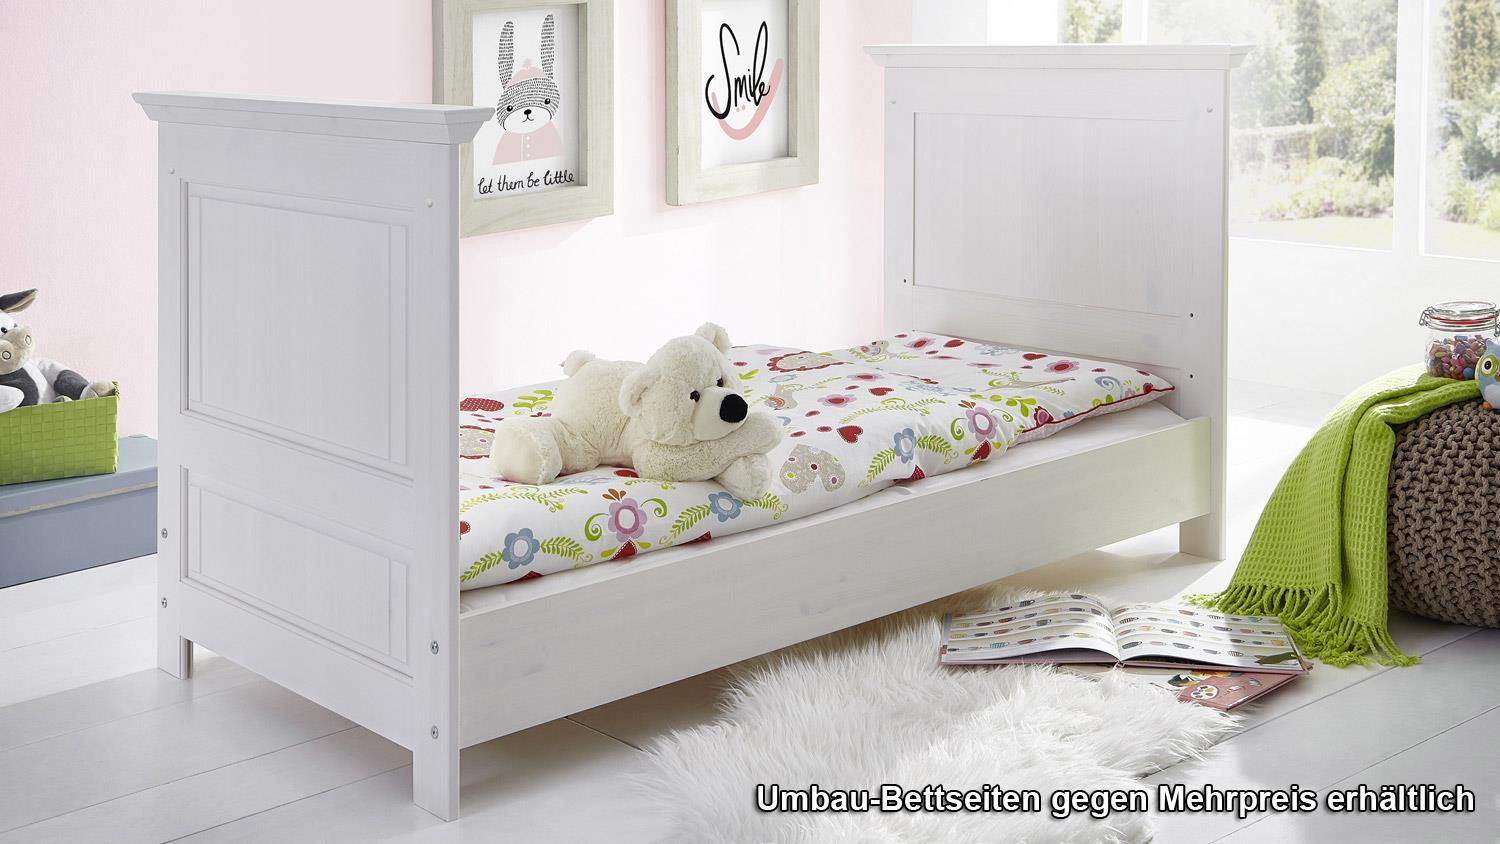 babybett odette gitterbett babyzimmerm bel in kiefer massiv wei. Black Bedroom Furniture Sets. Home Design Ideas